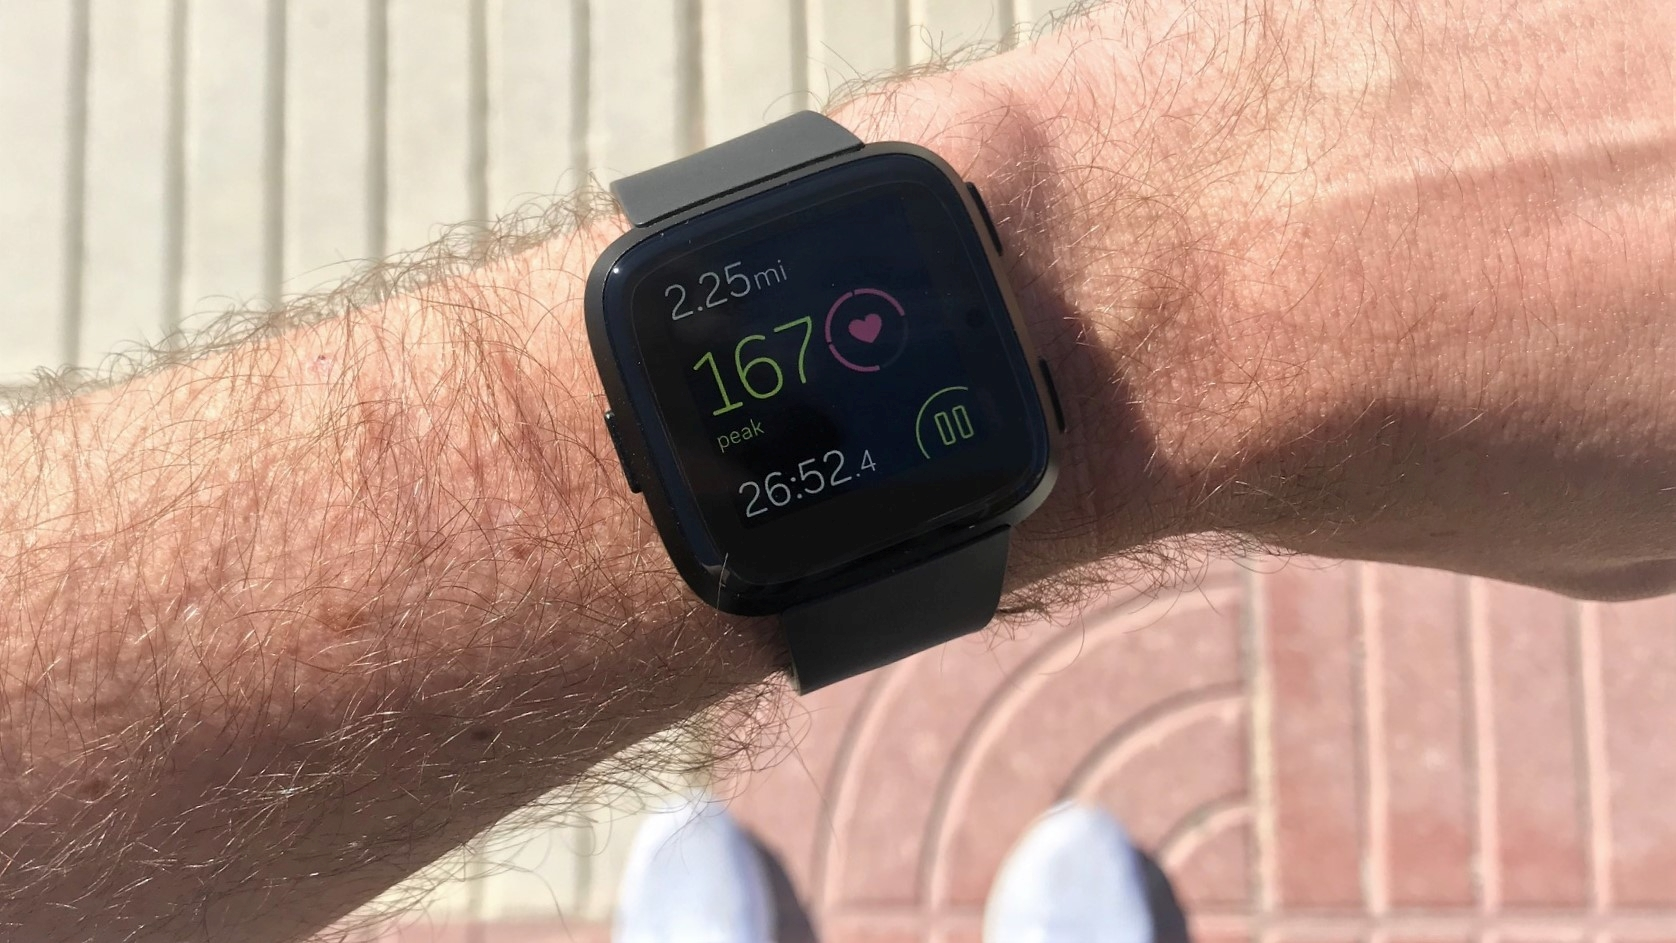 The Versa's Run Detect feature means it automatically pauses your workout if you stop for a short break